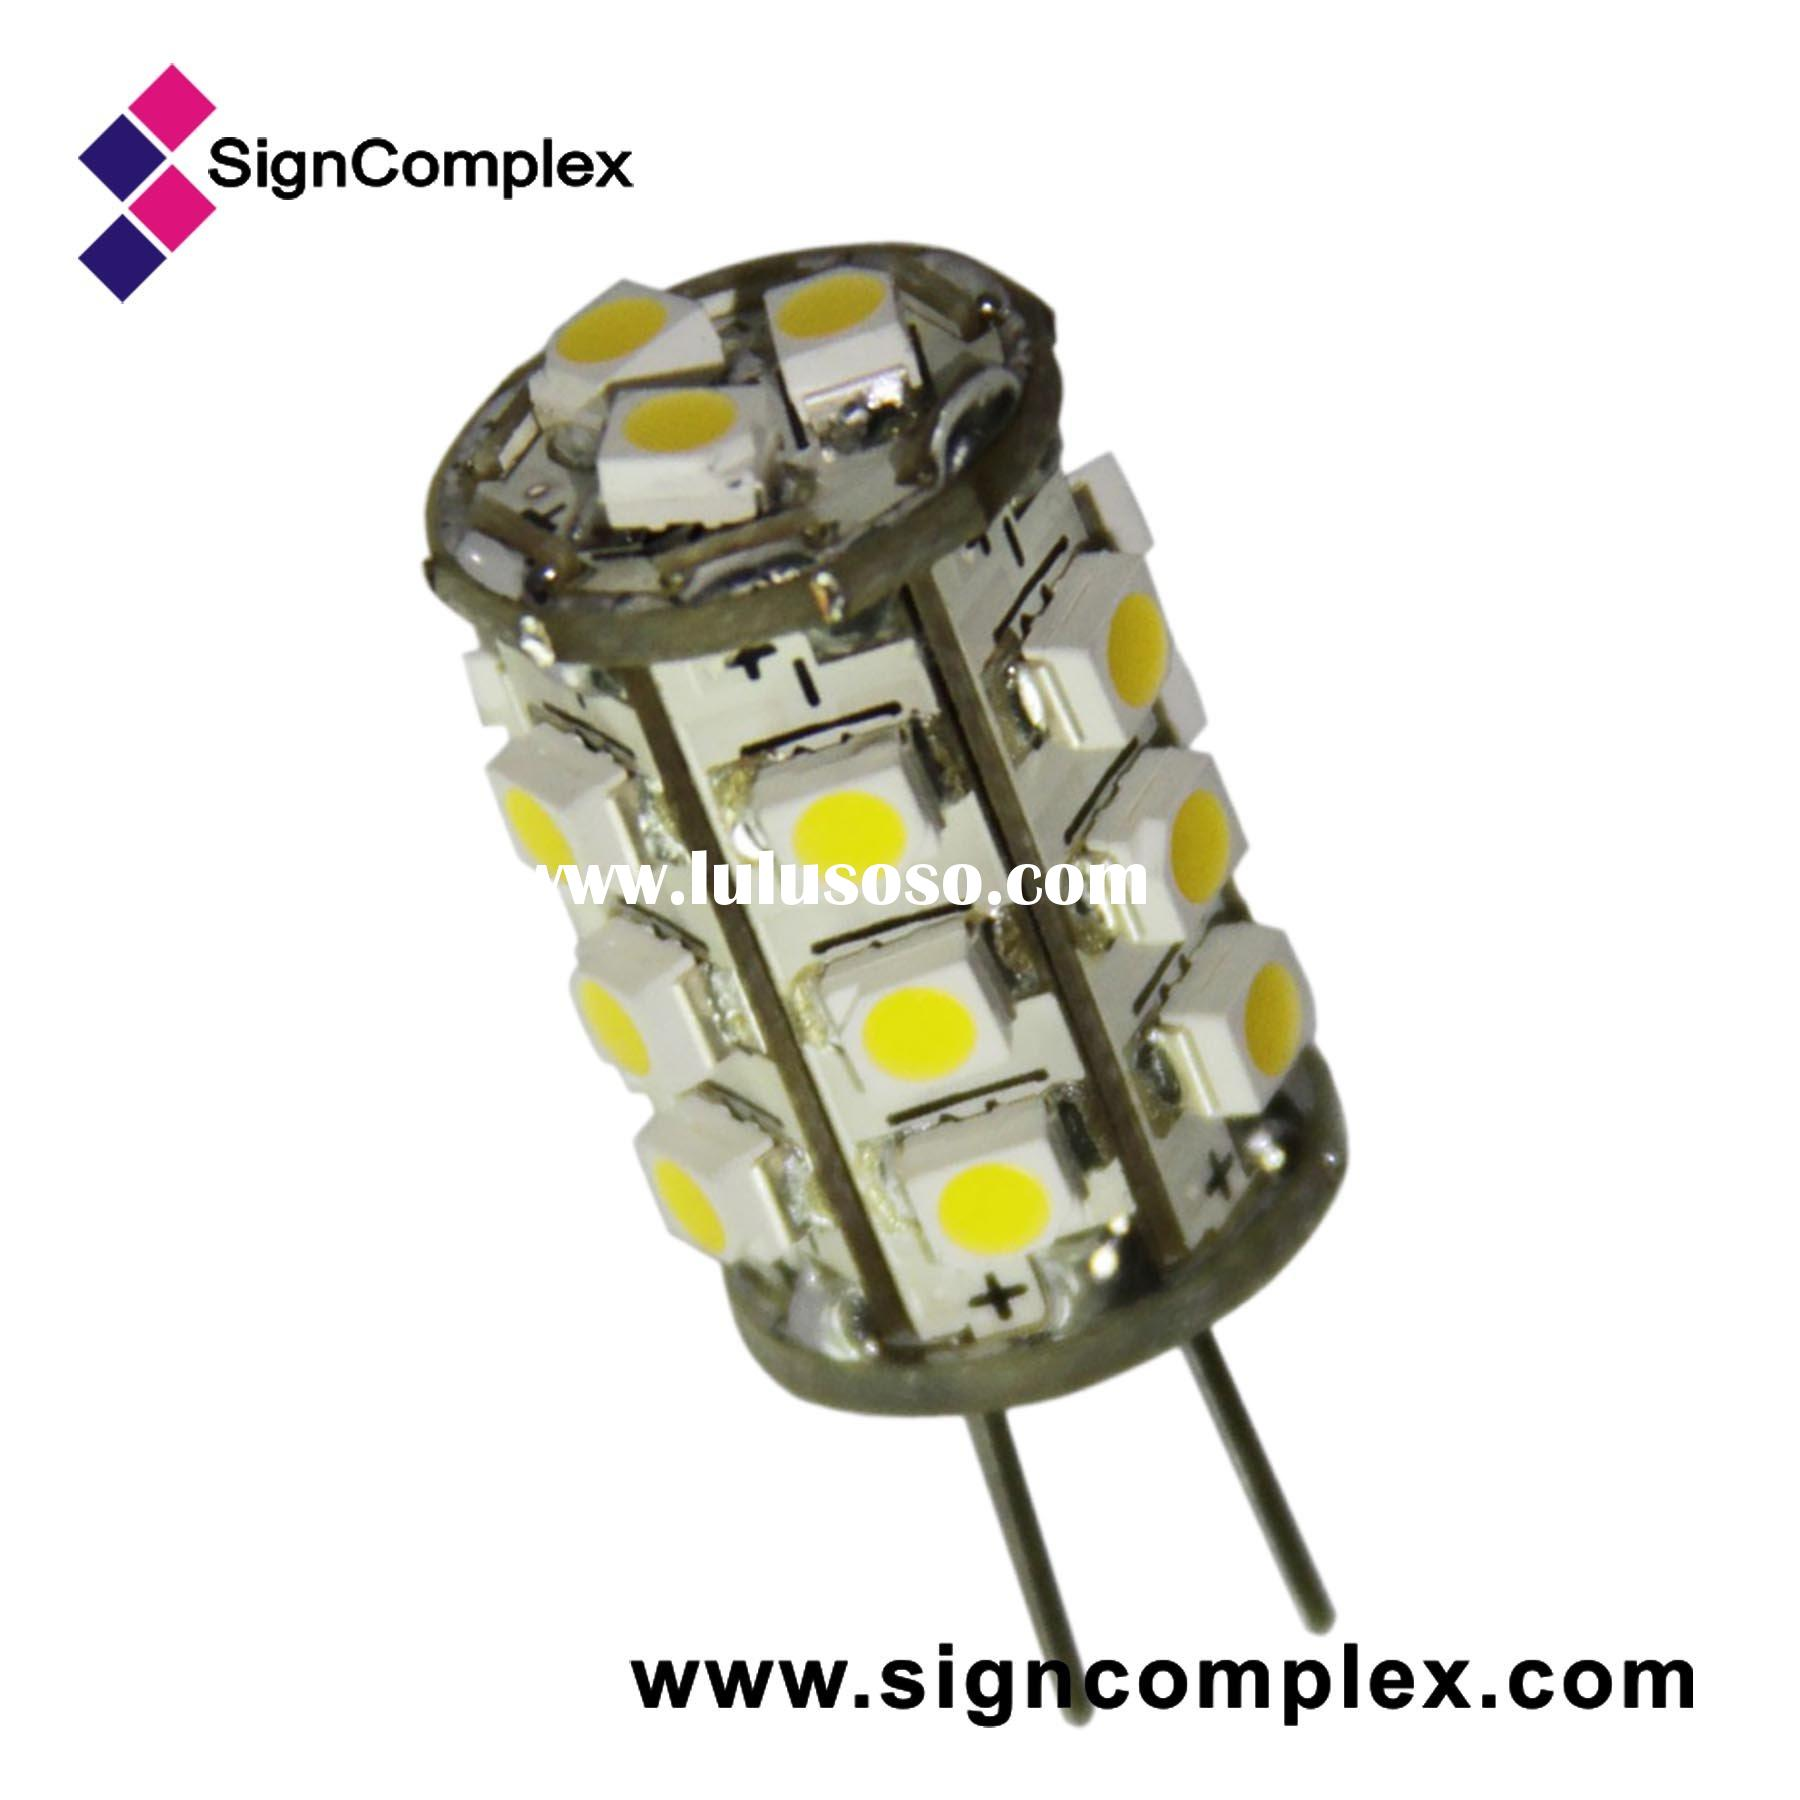 Replacement of 10W halogen lamp, SMD LED bulb, 1W G4